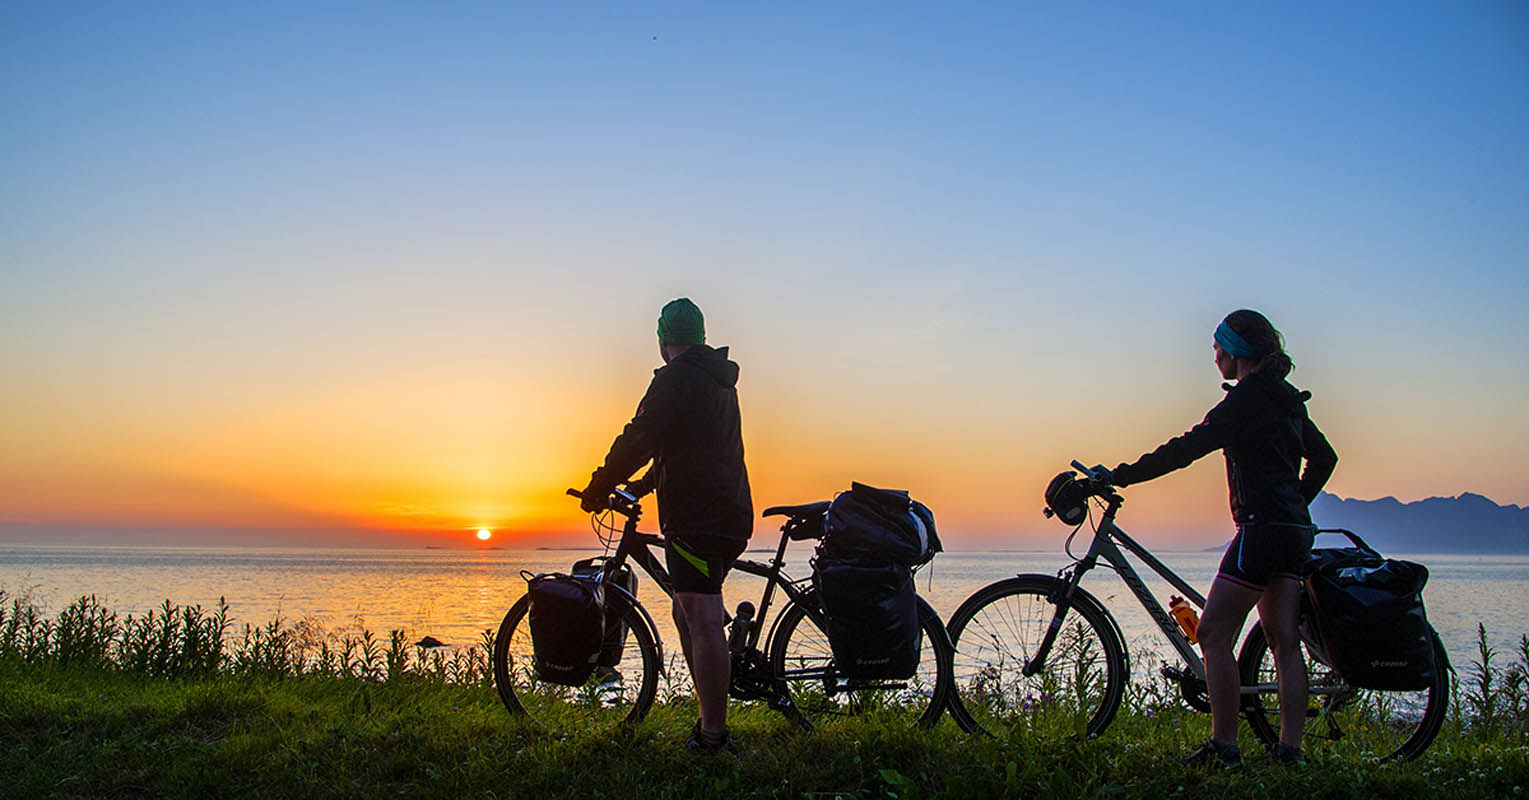 Cycling is a popular activity in under the midnight sun in Vesterålen